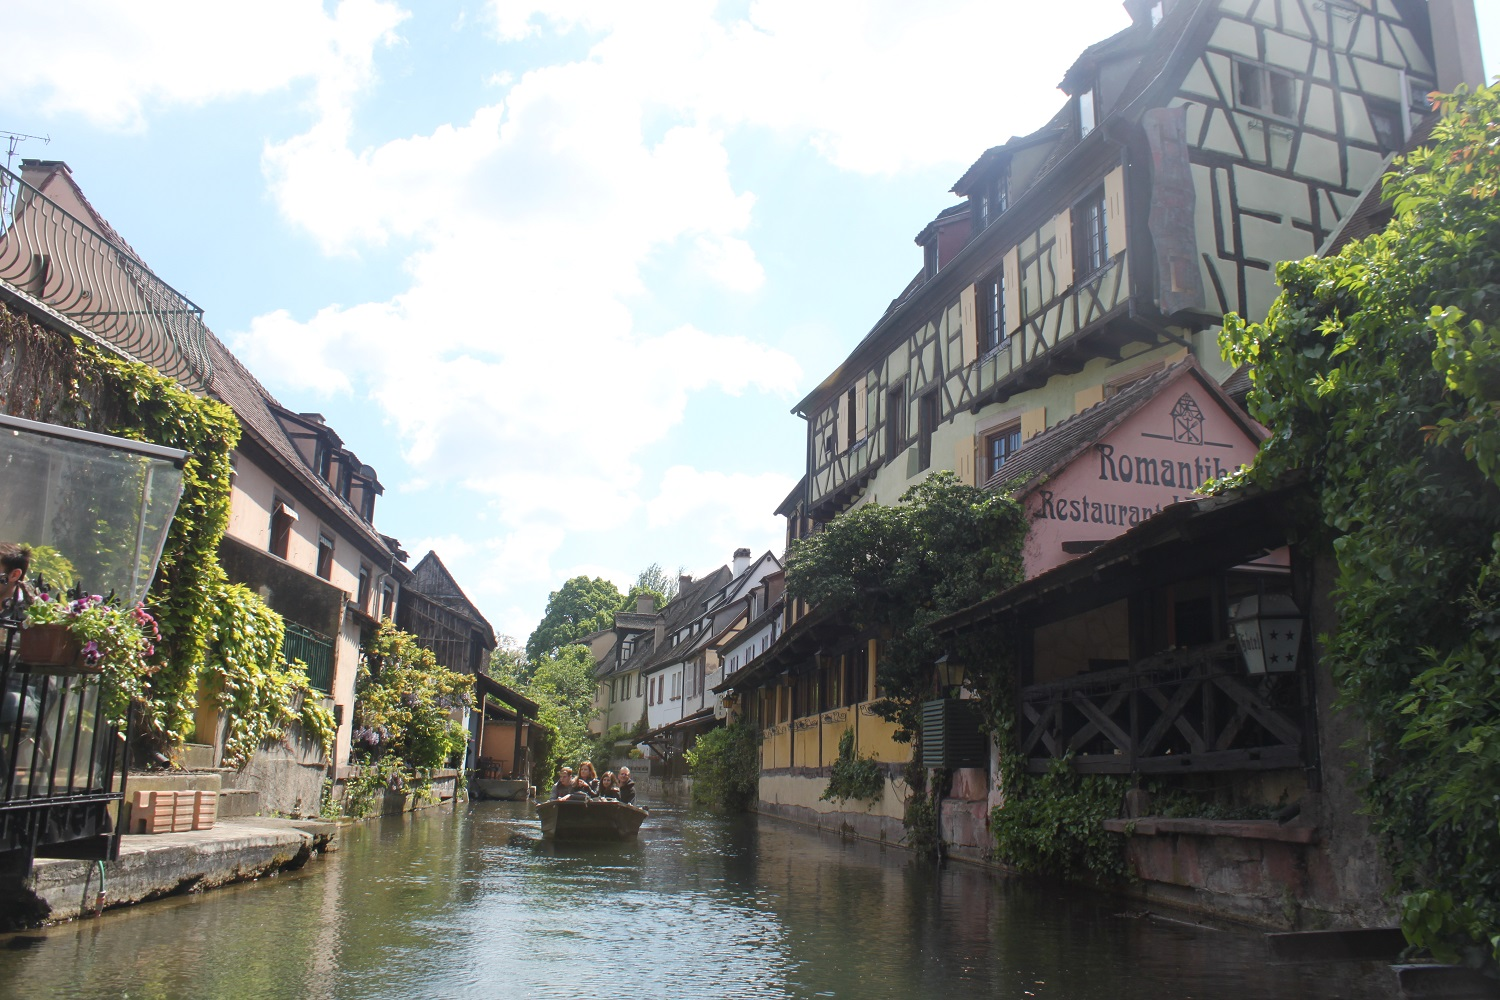 The Canals of Colmar